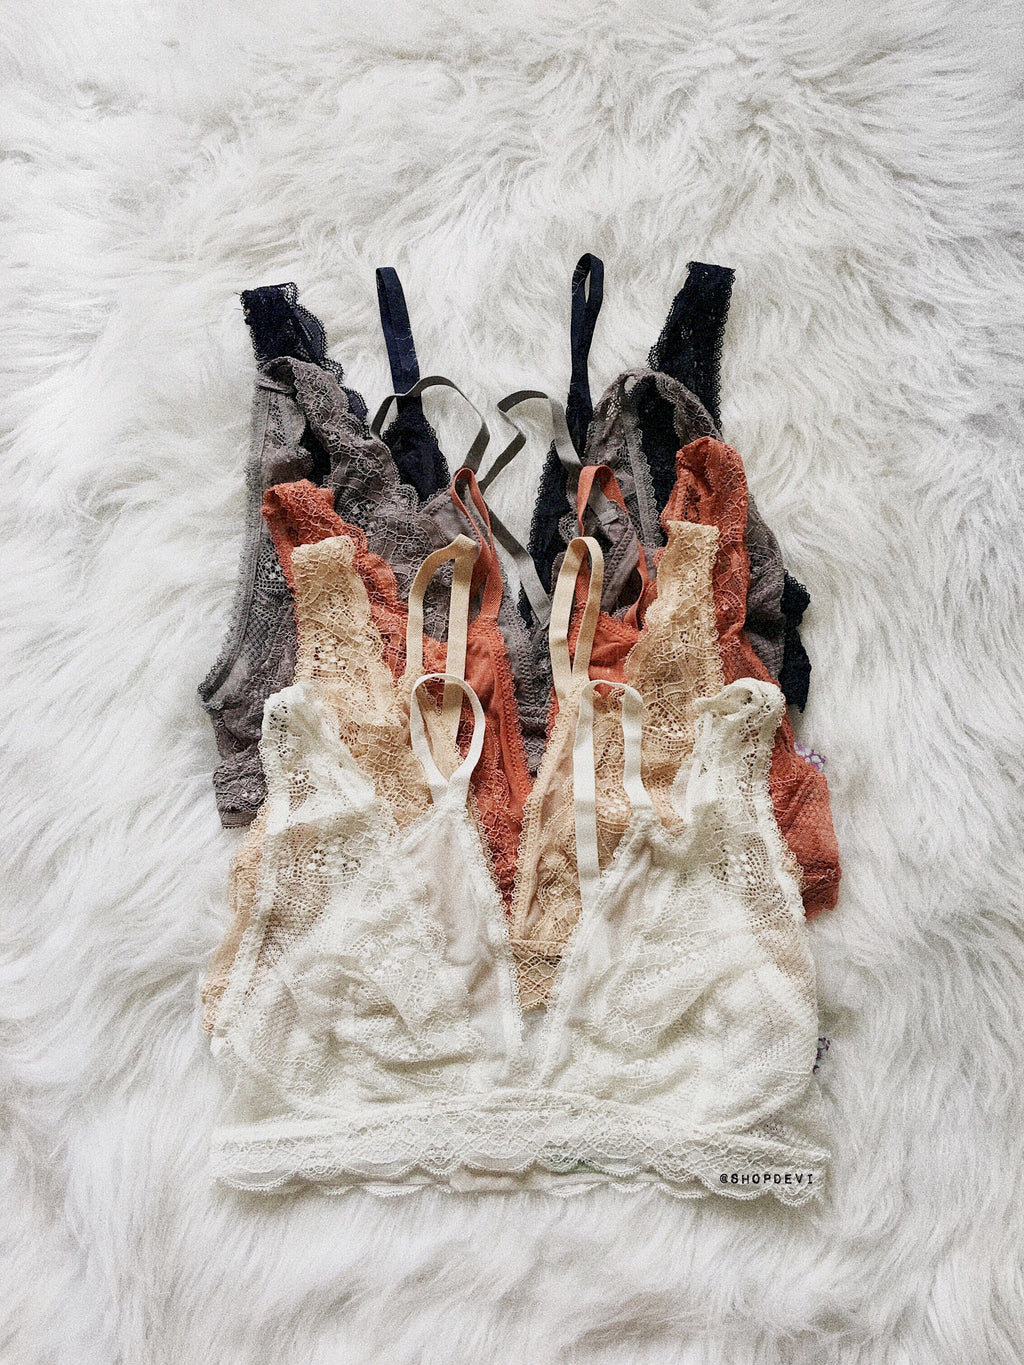 Rosa Bralette (Black, Gray, Navy, Beige, Pink Clay, White)